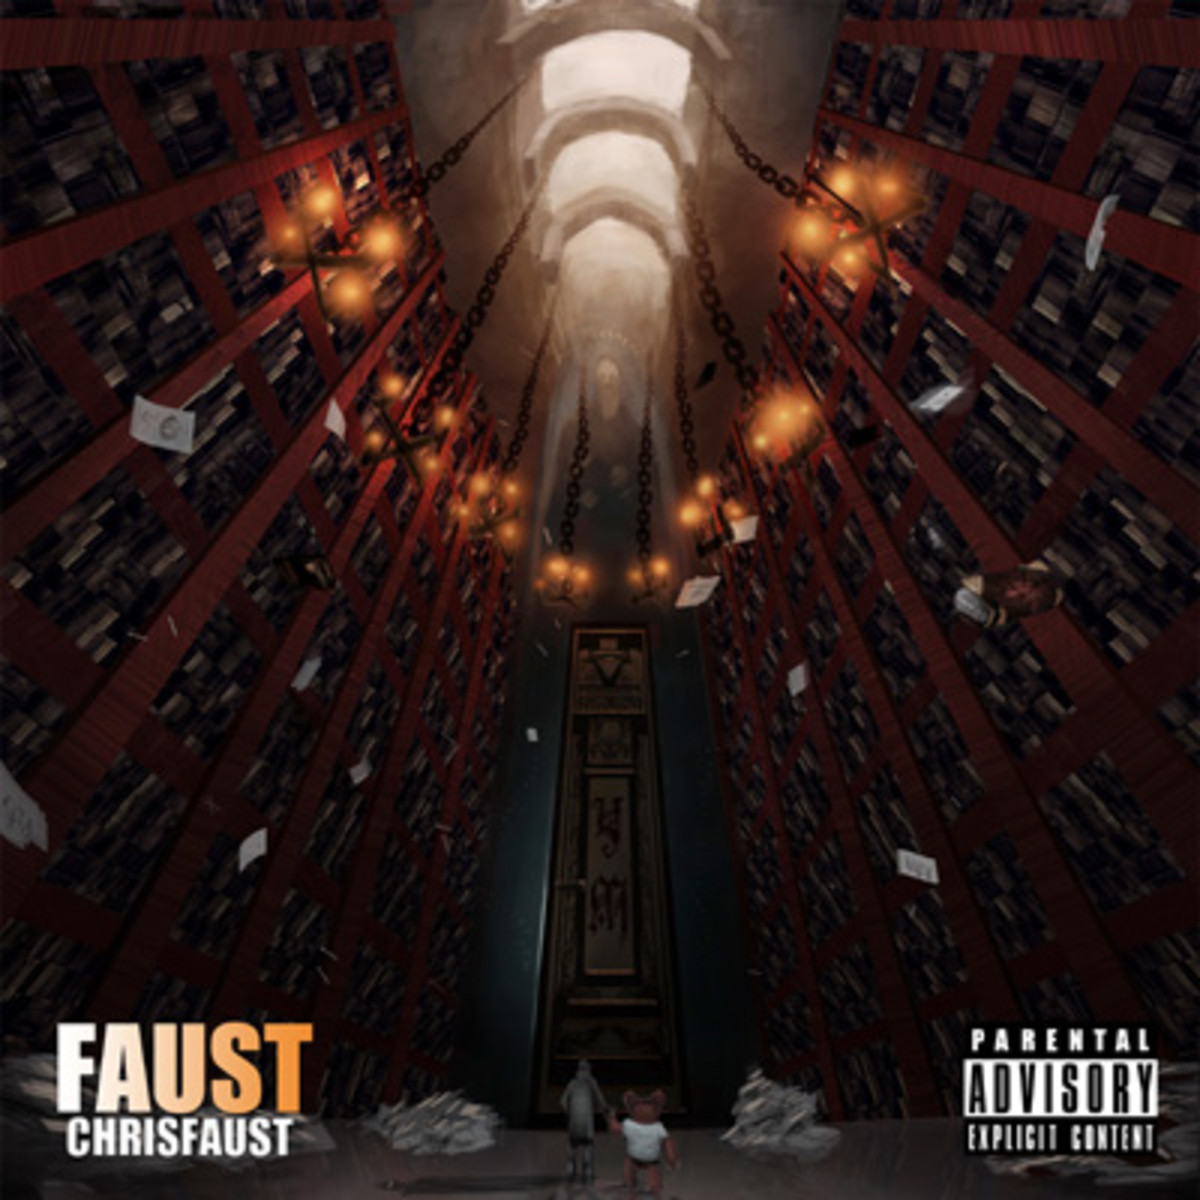 faust-front.jpg